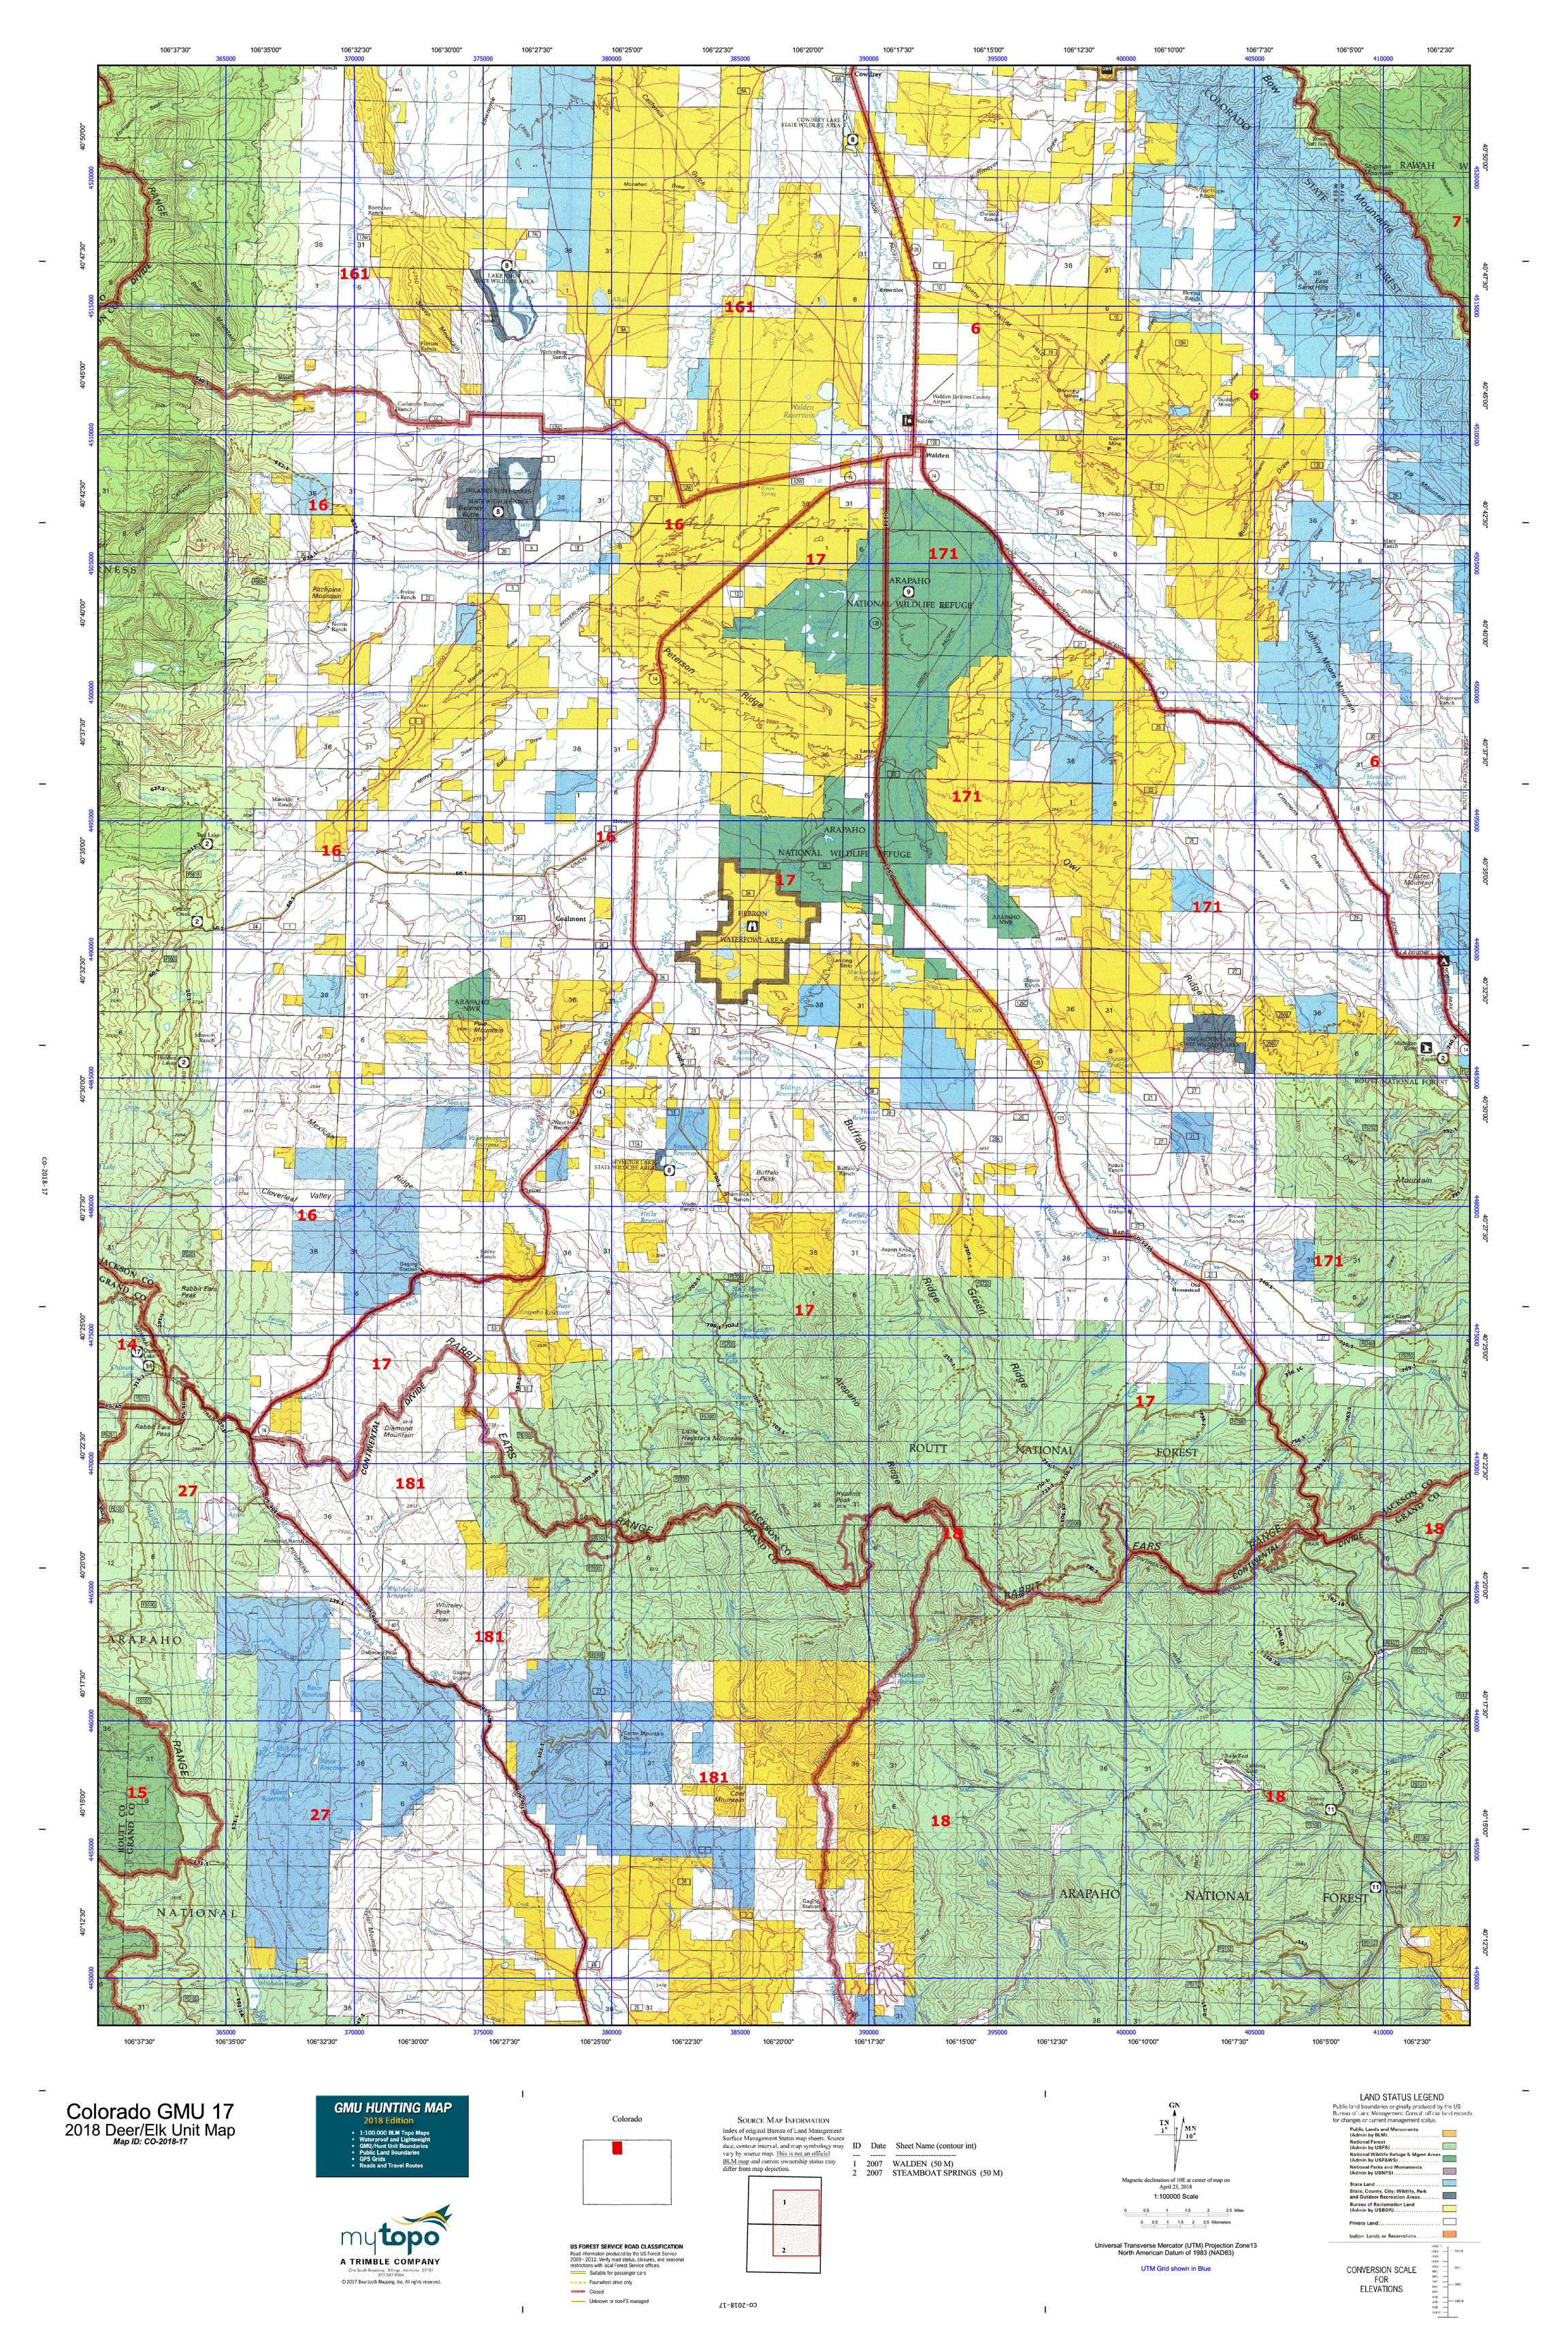 Colorado GMU 17 Map | MyTopo